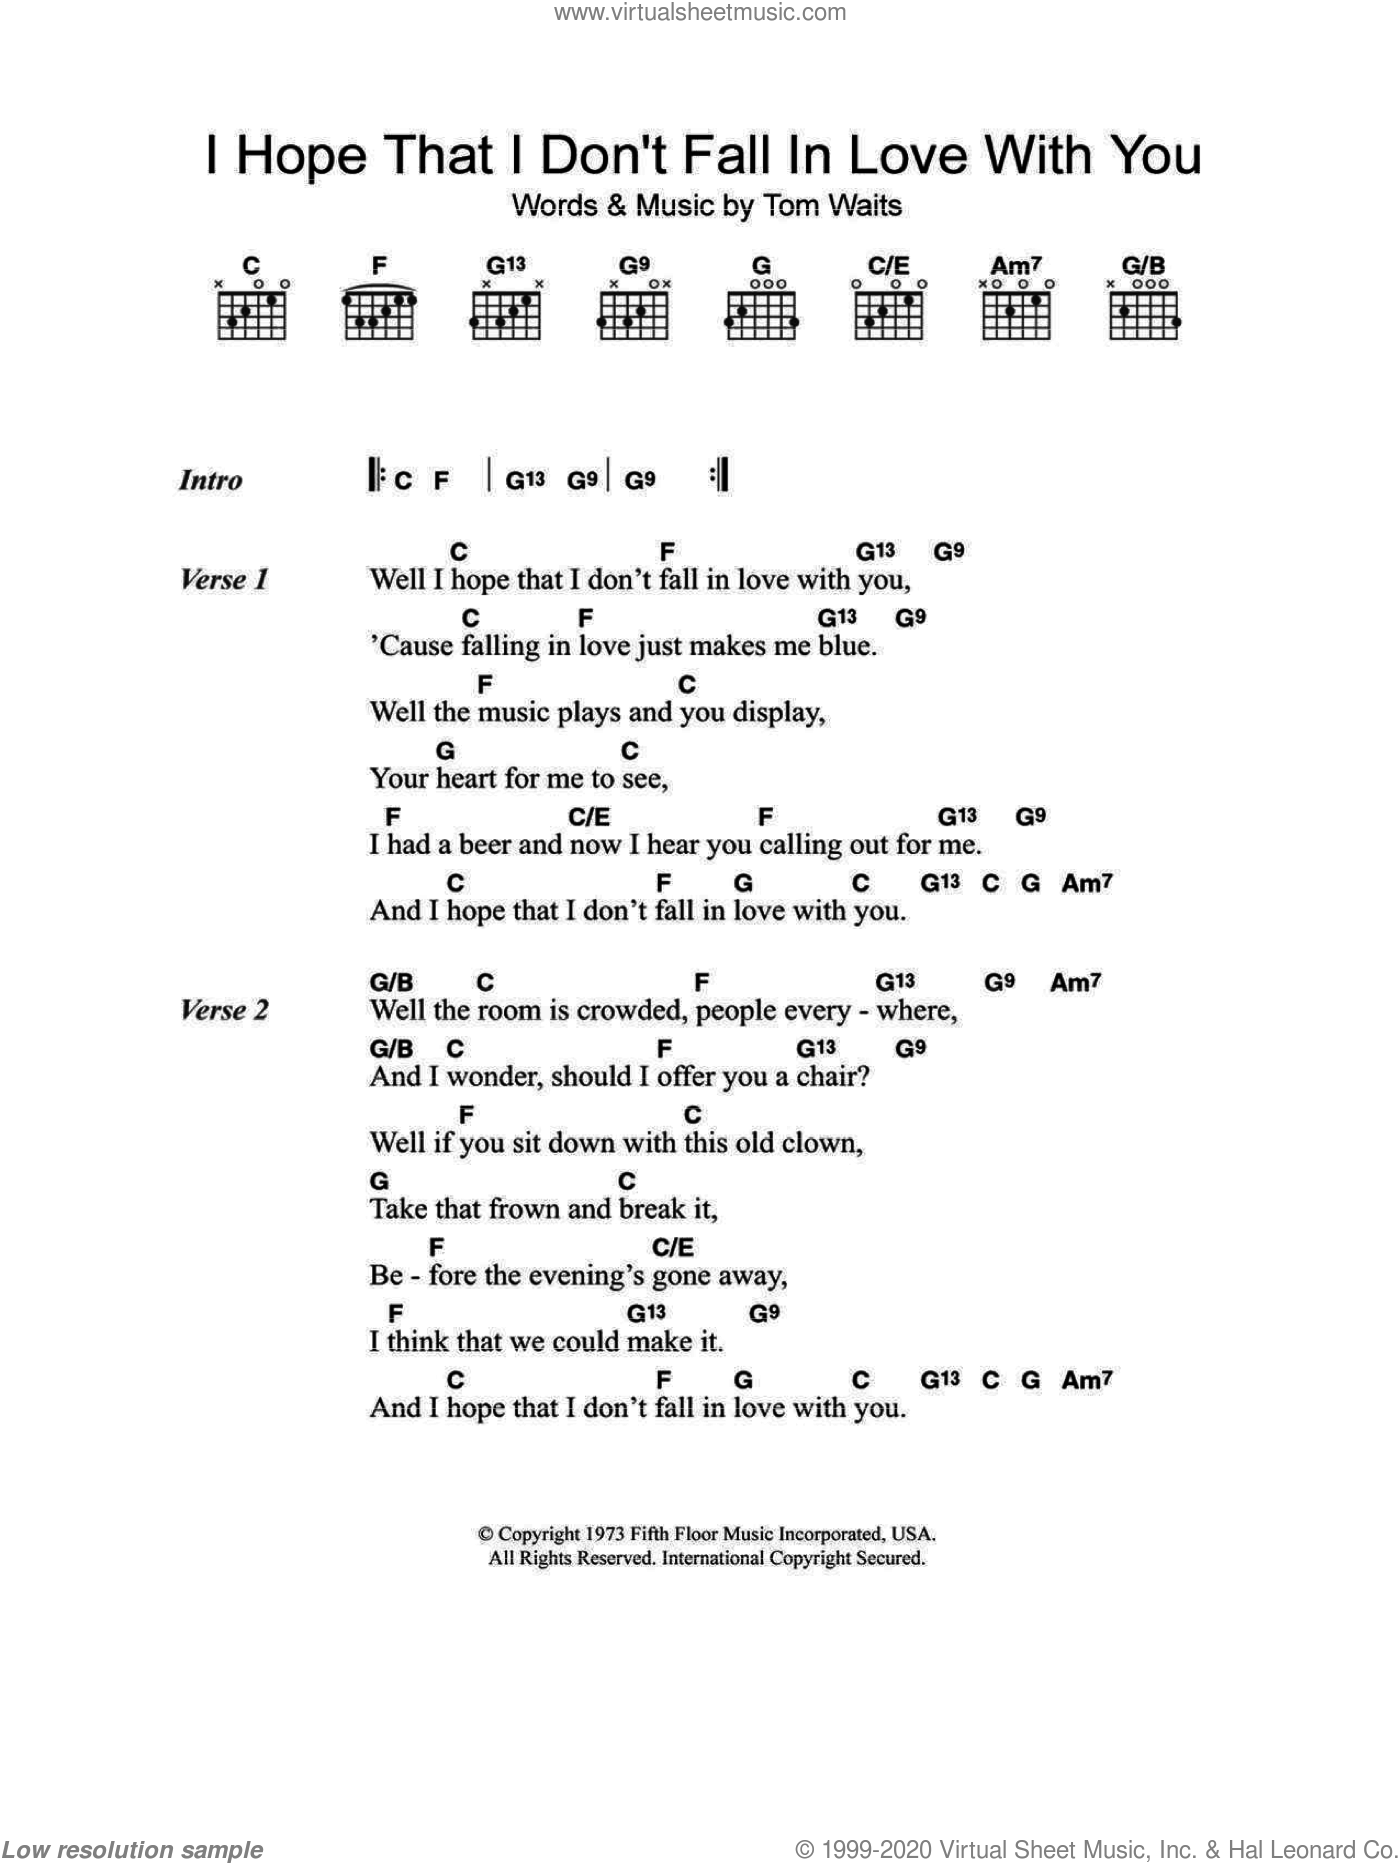 I Hope That I Don't Fall In Love With You sheet music for guitar (chords) by Tom Waits